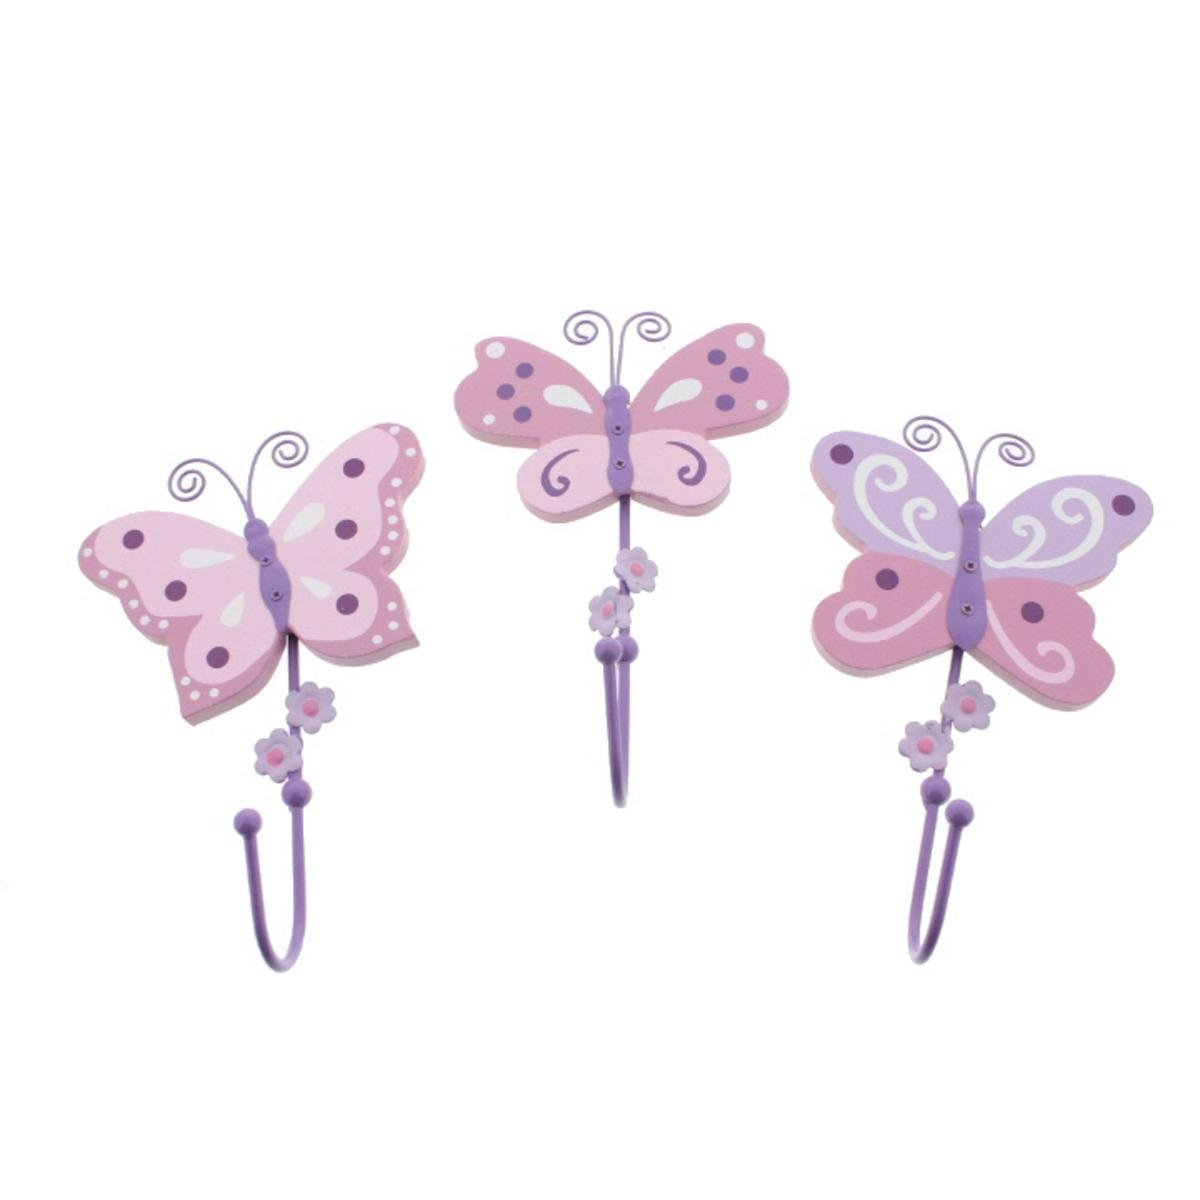 Koala Baby 3PC Nursery Butterfly Wall Decor Pink O/S